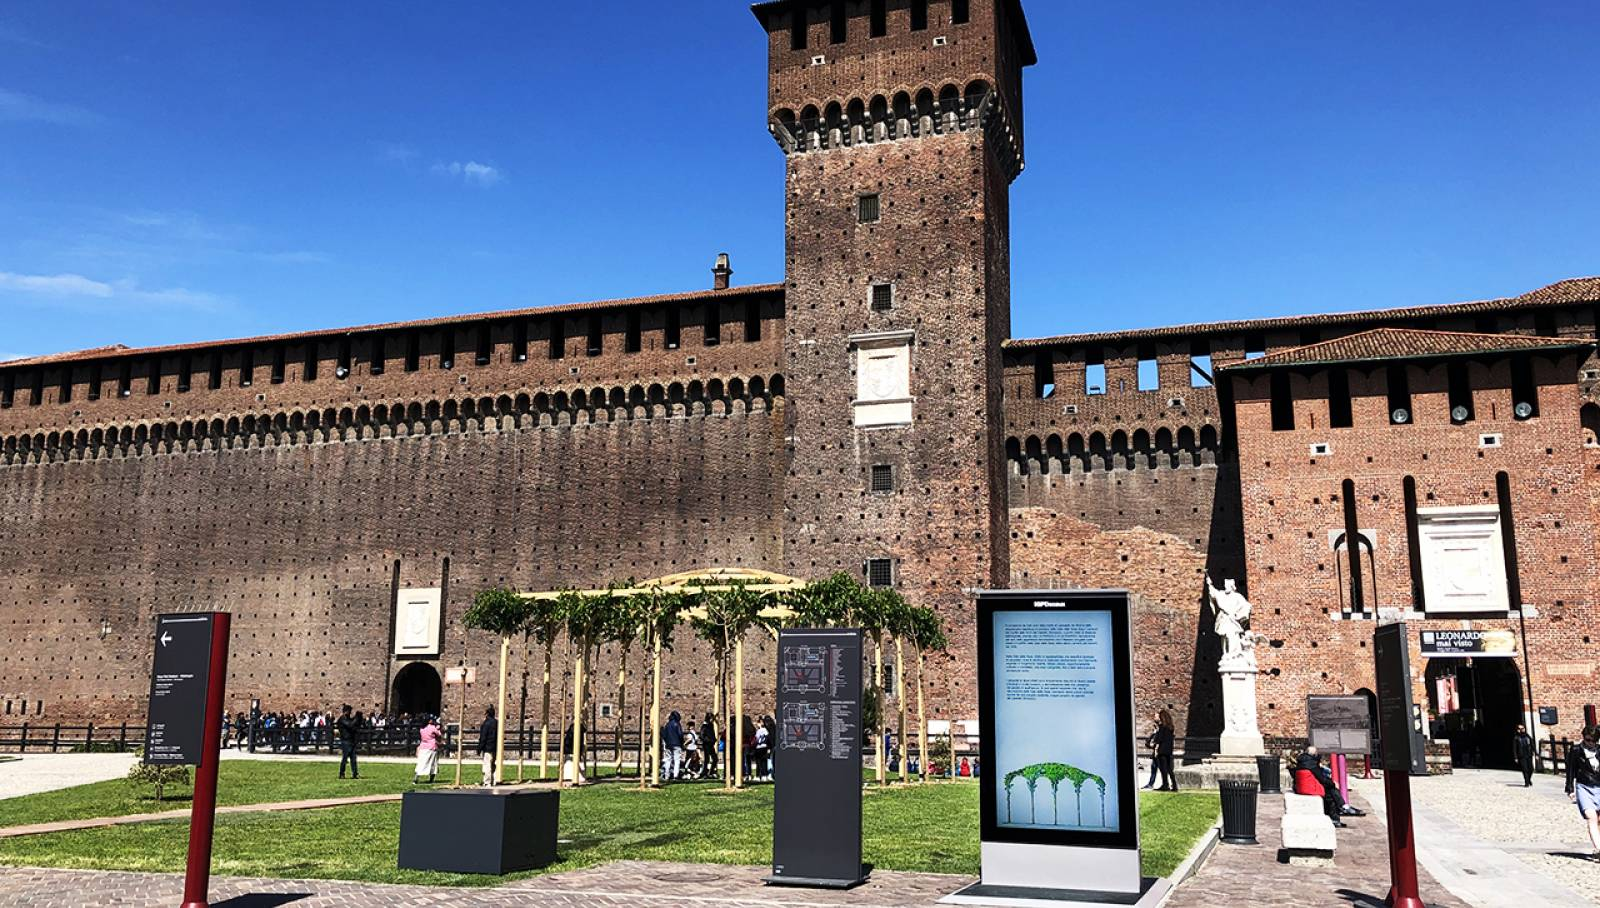 IGPDecaux Milan Digital Screen Sala delle Asse Sforza Castle